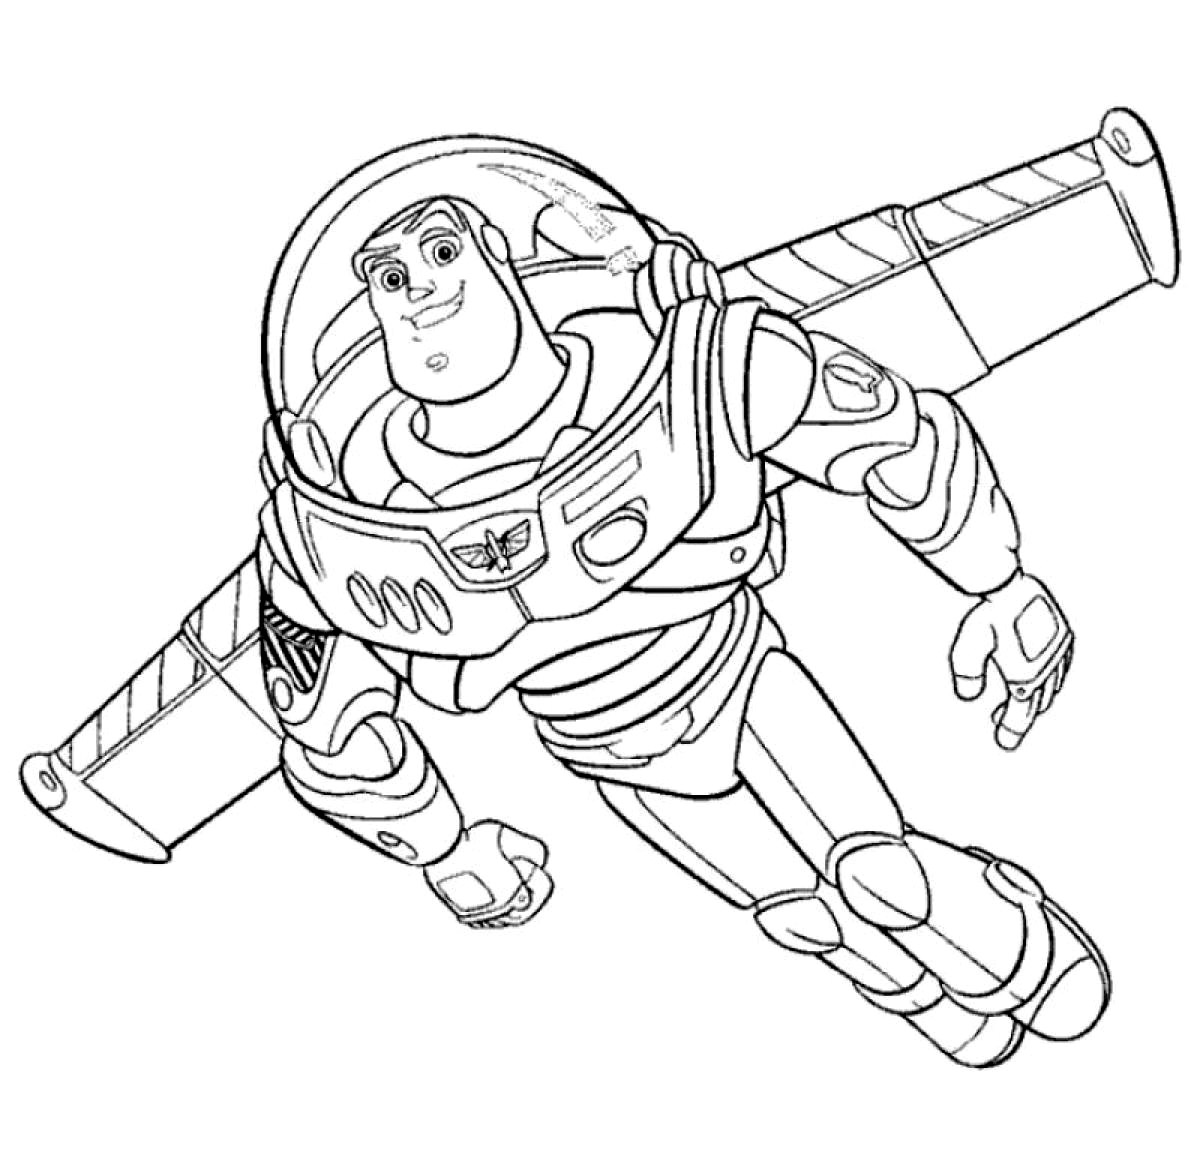 1200x1173 Buzz Lightyear Hero Free Coloring Page Disney, Kids, Toy Story